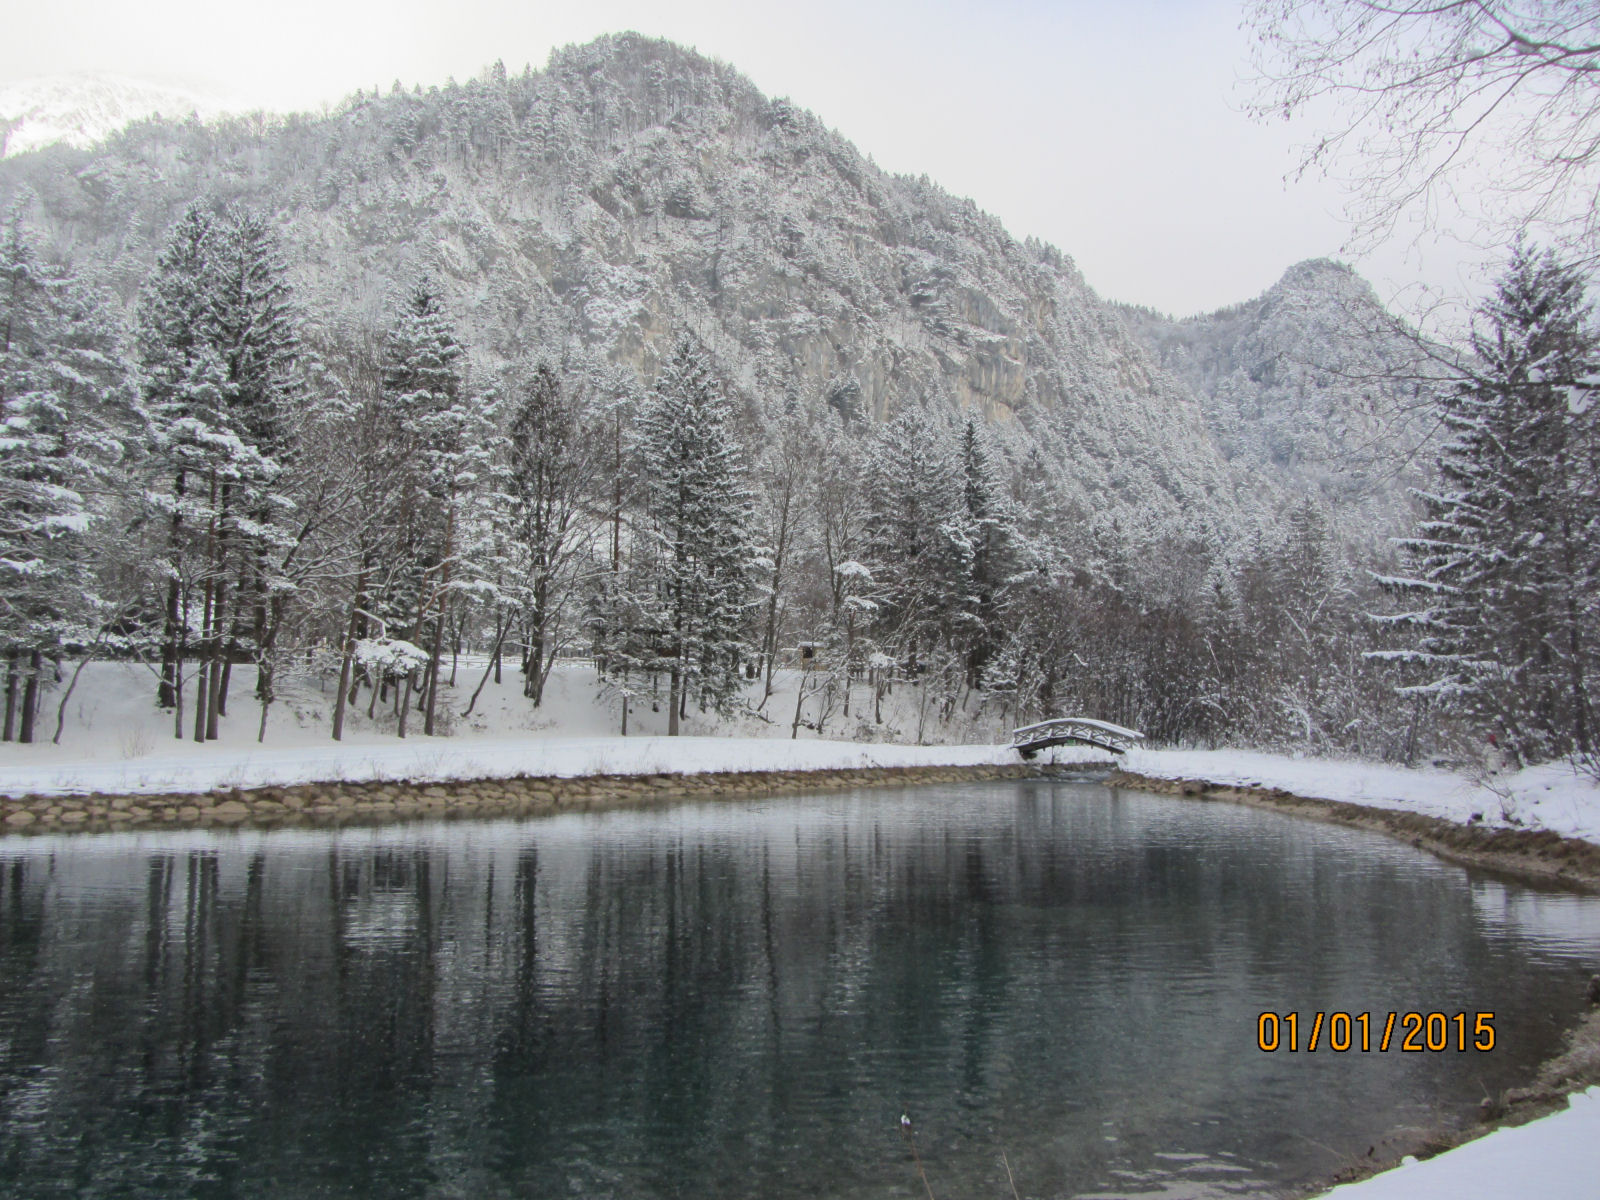 Zavrsnica reservoir and a bridge in winter